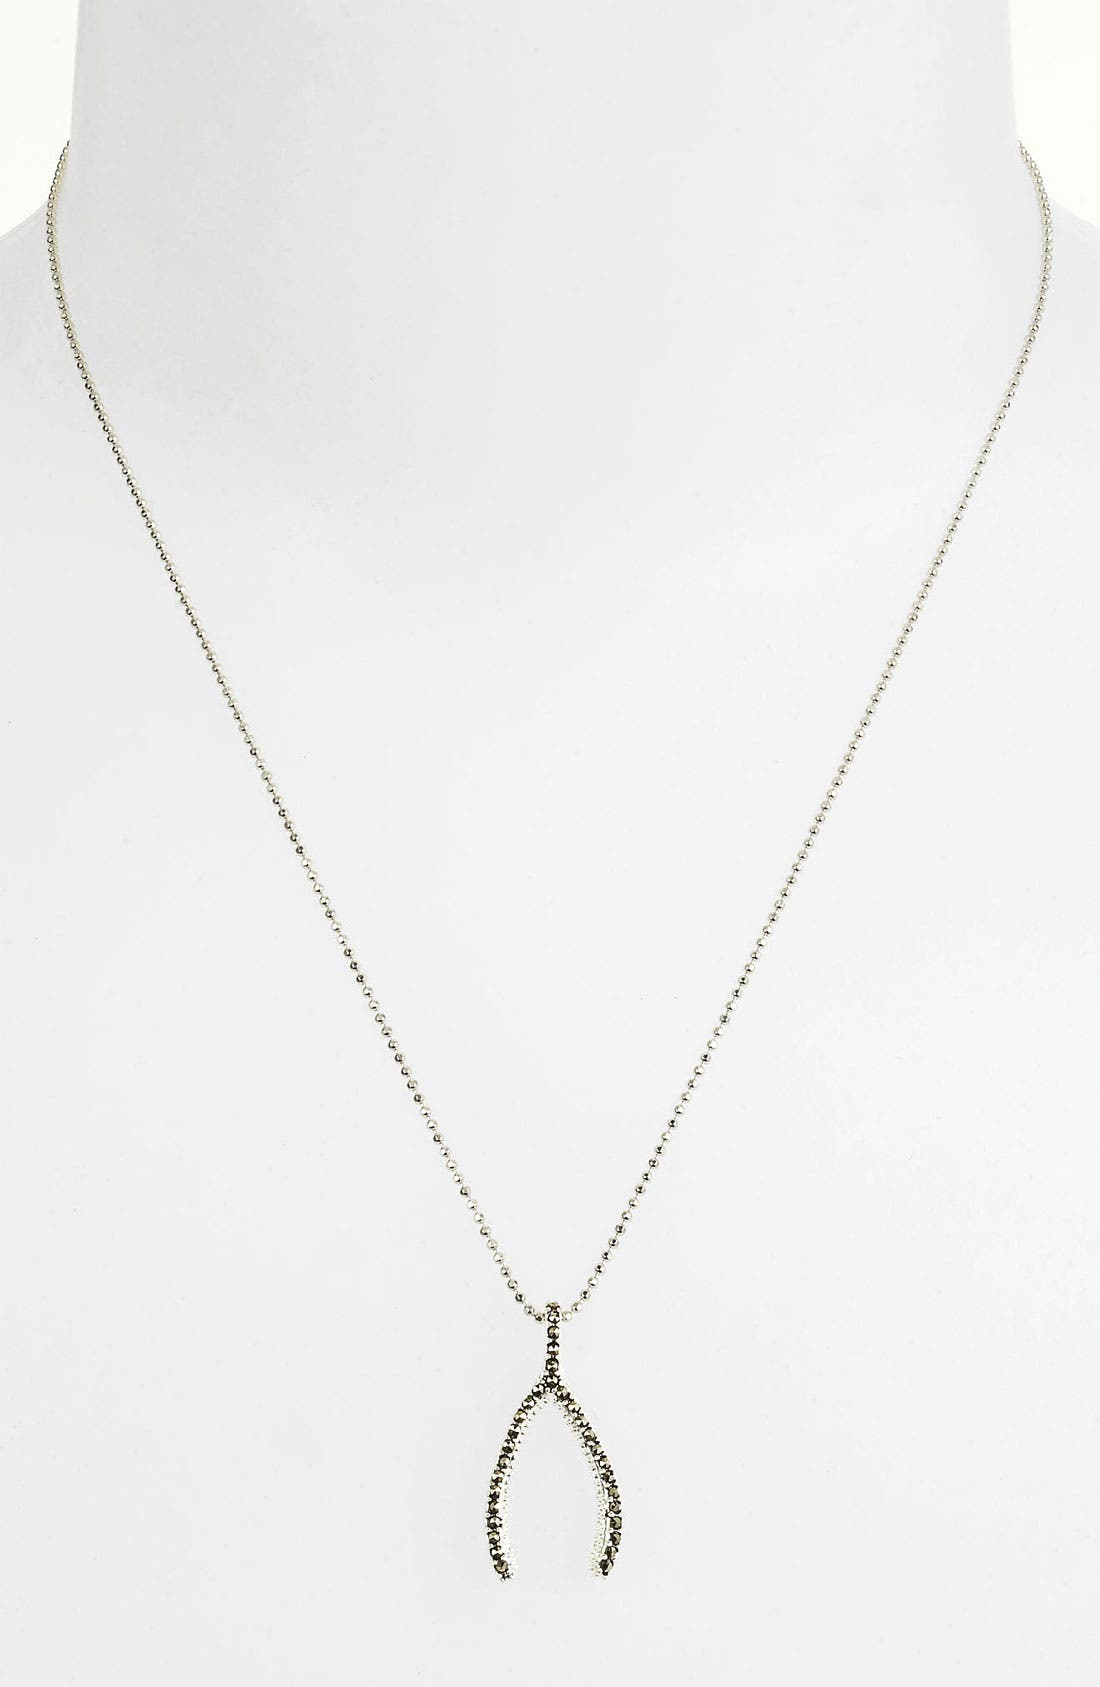 Main Image - Judith Jack Reversible Pavé Wishbone Pendant Necklace